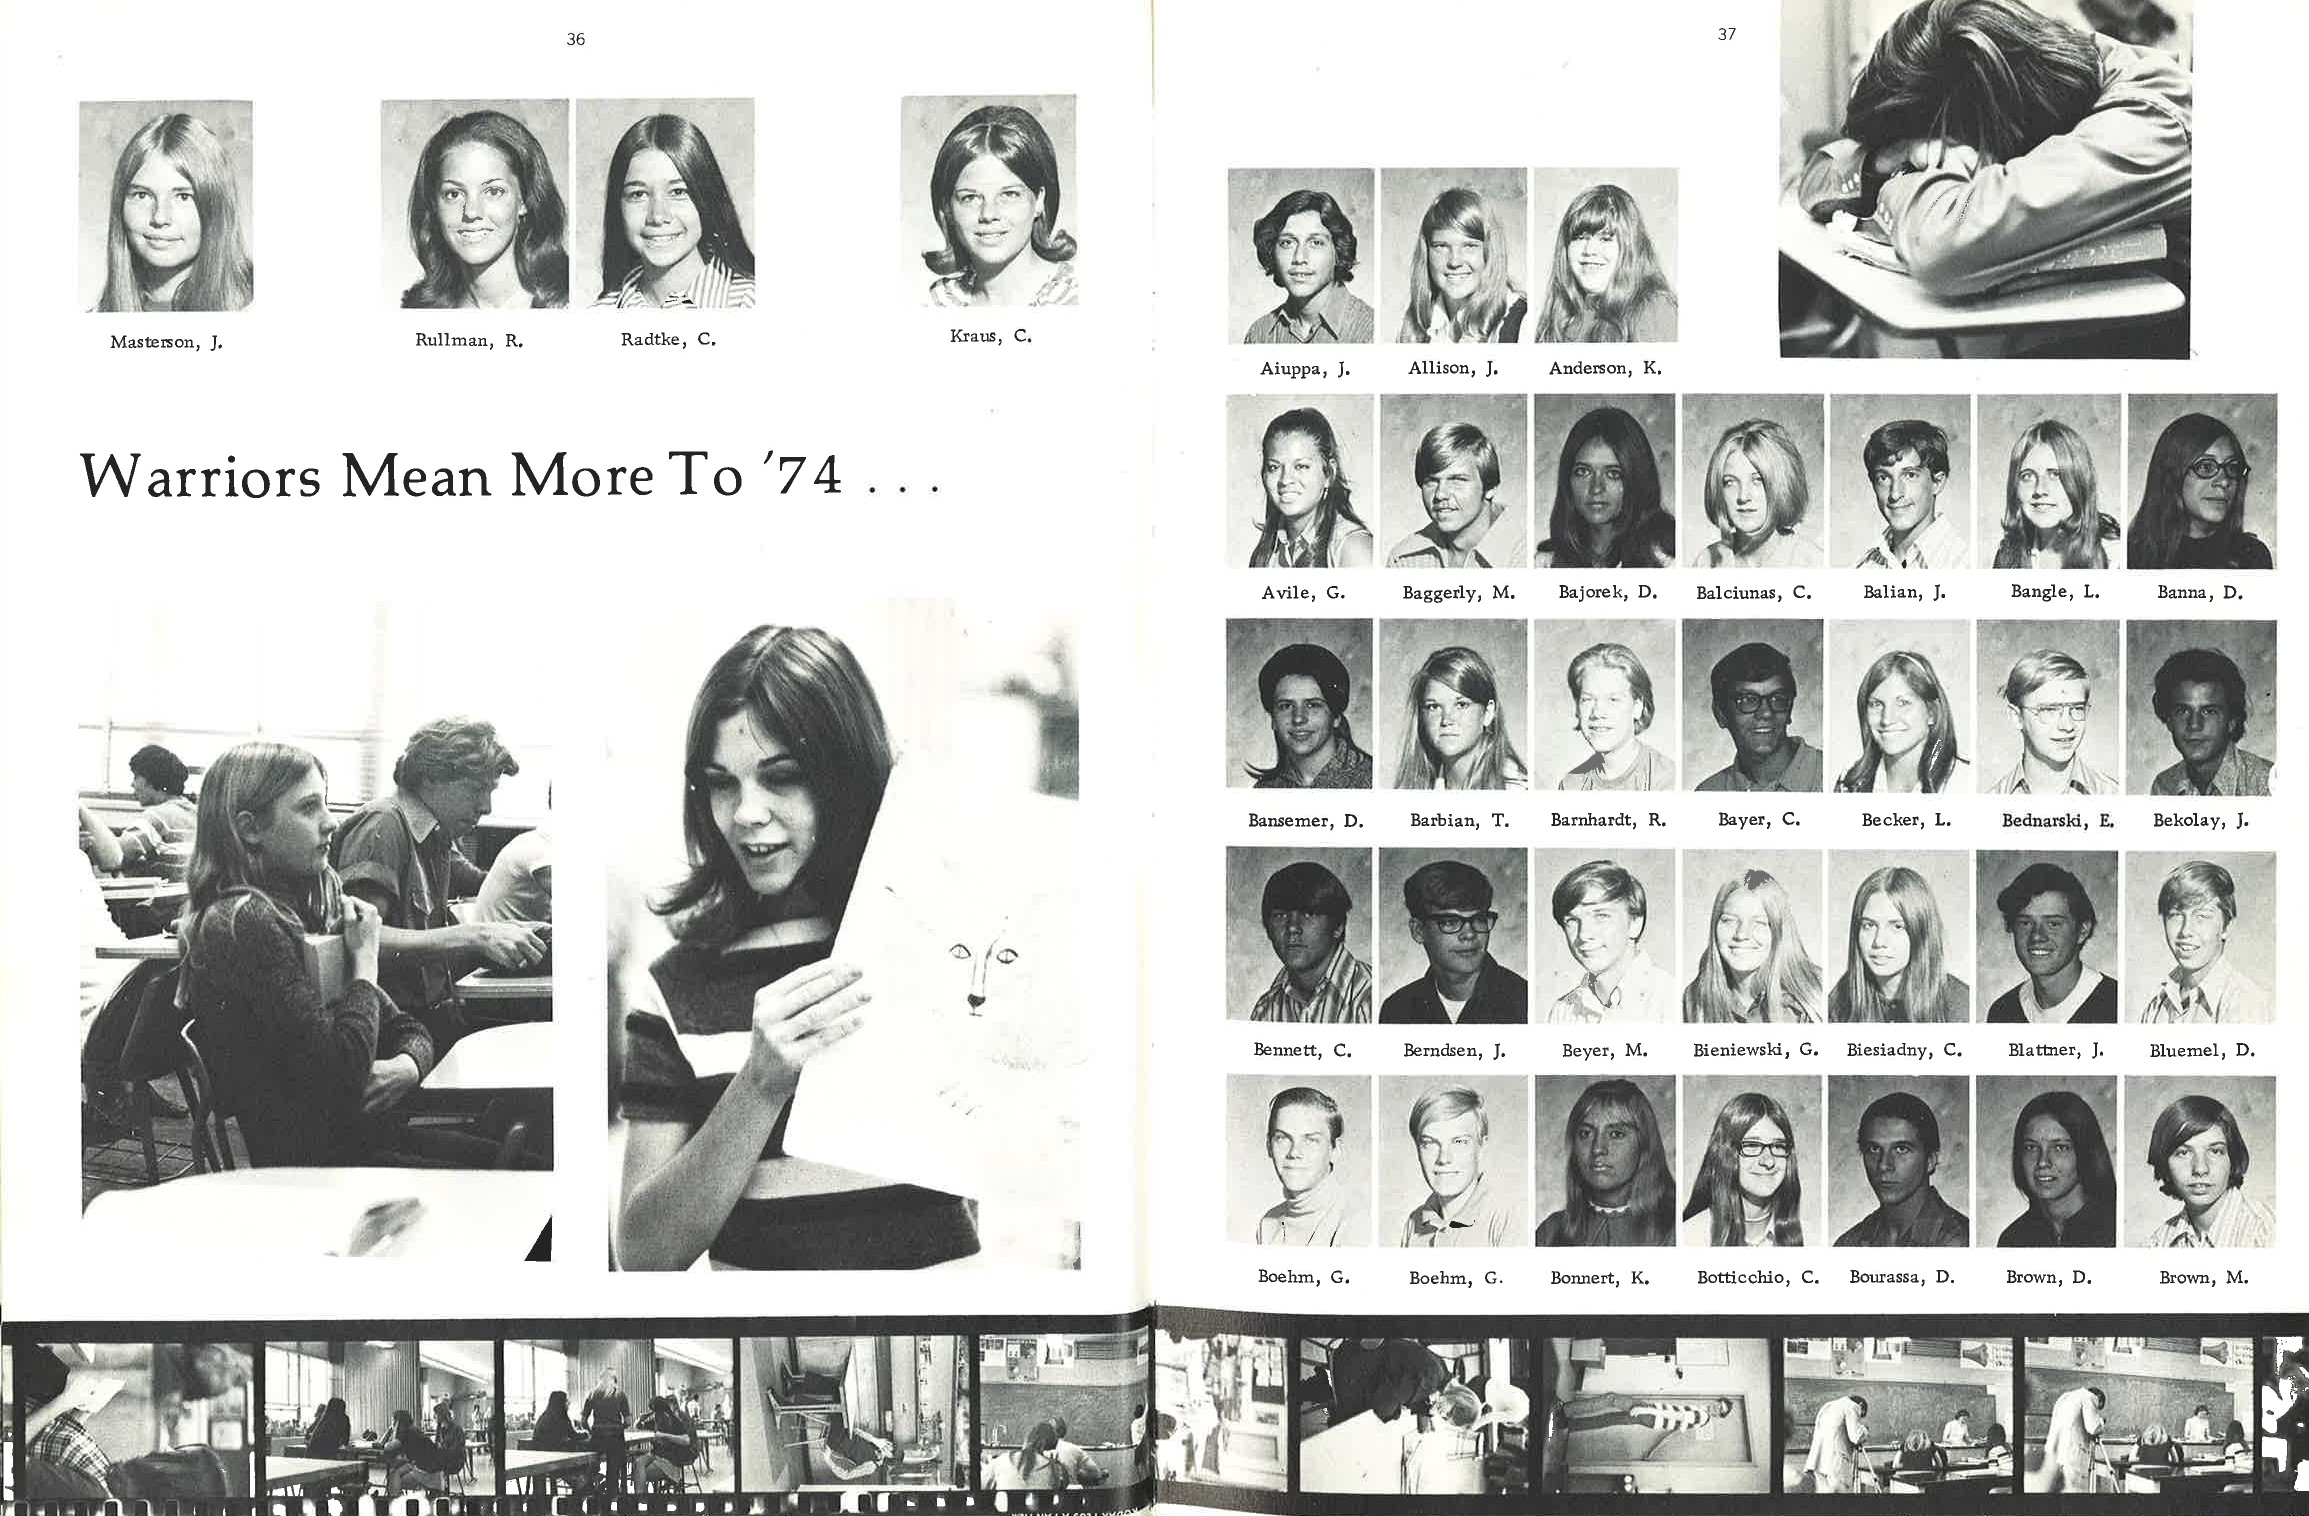 1972_Yearbook_36-37.jpg